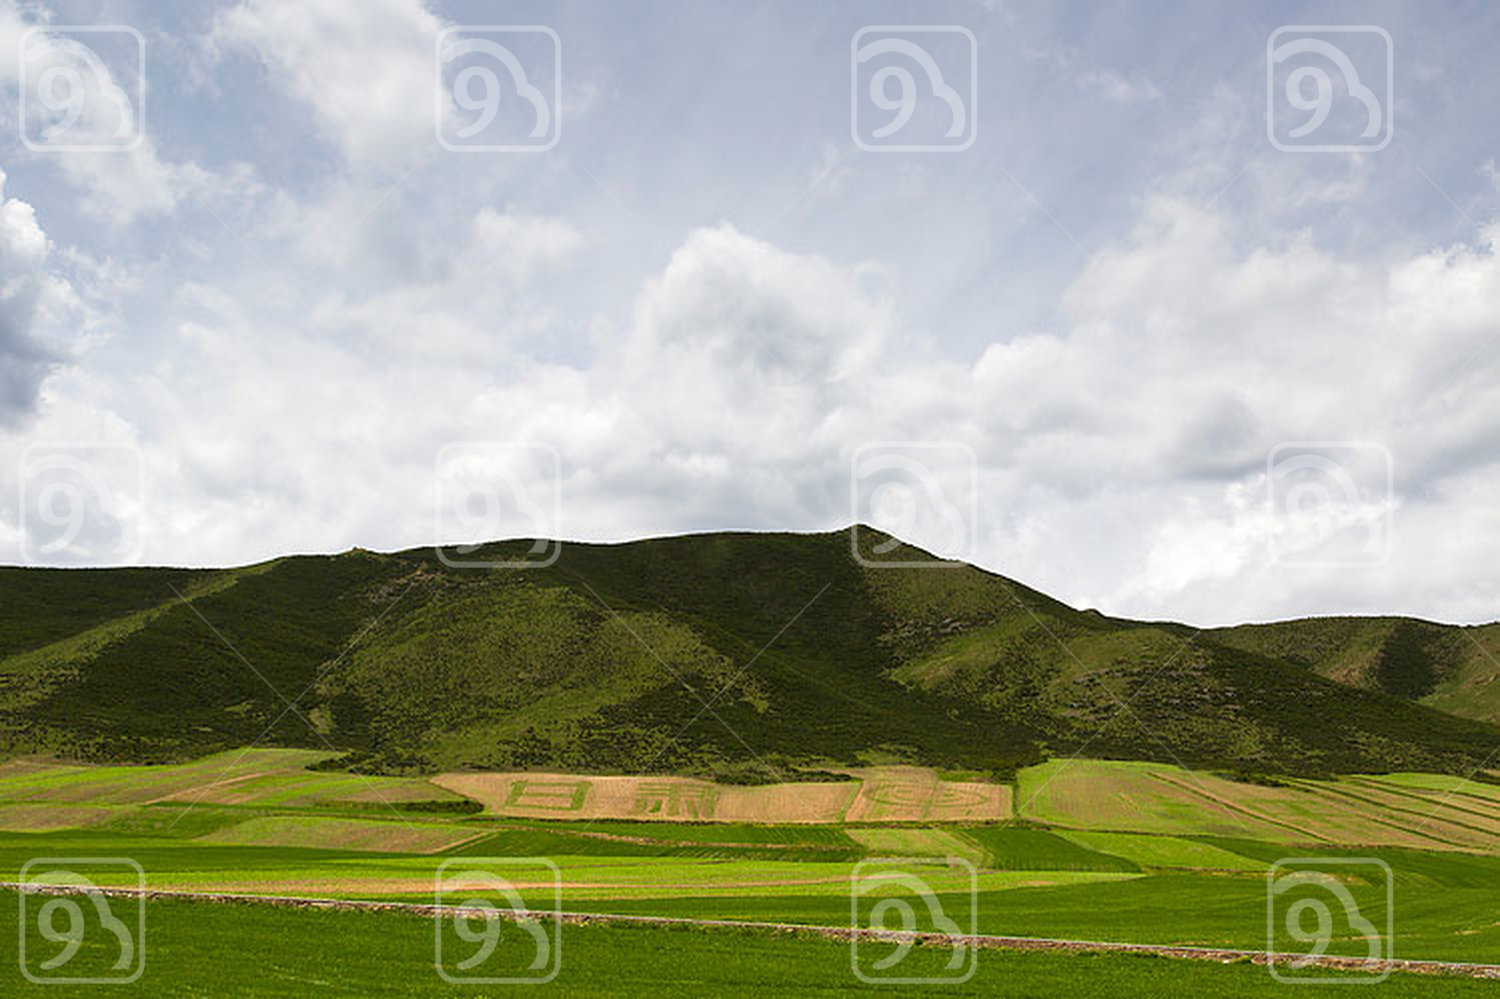 Mountain and field in Gansu province, China